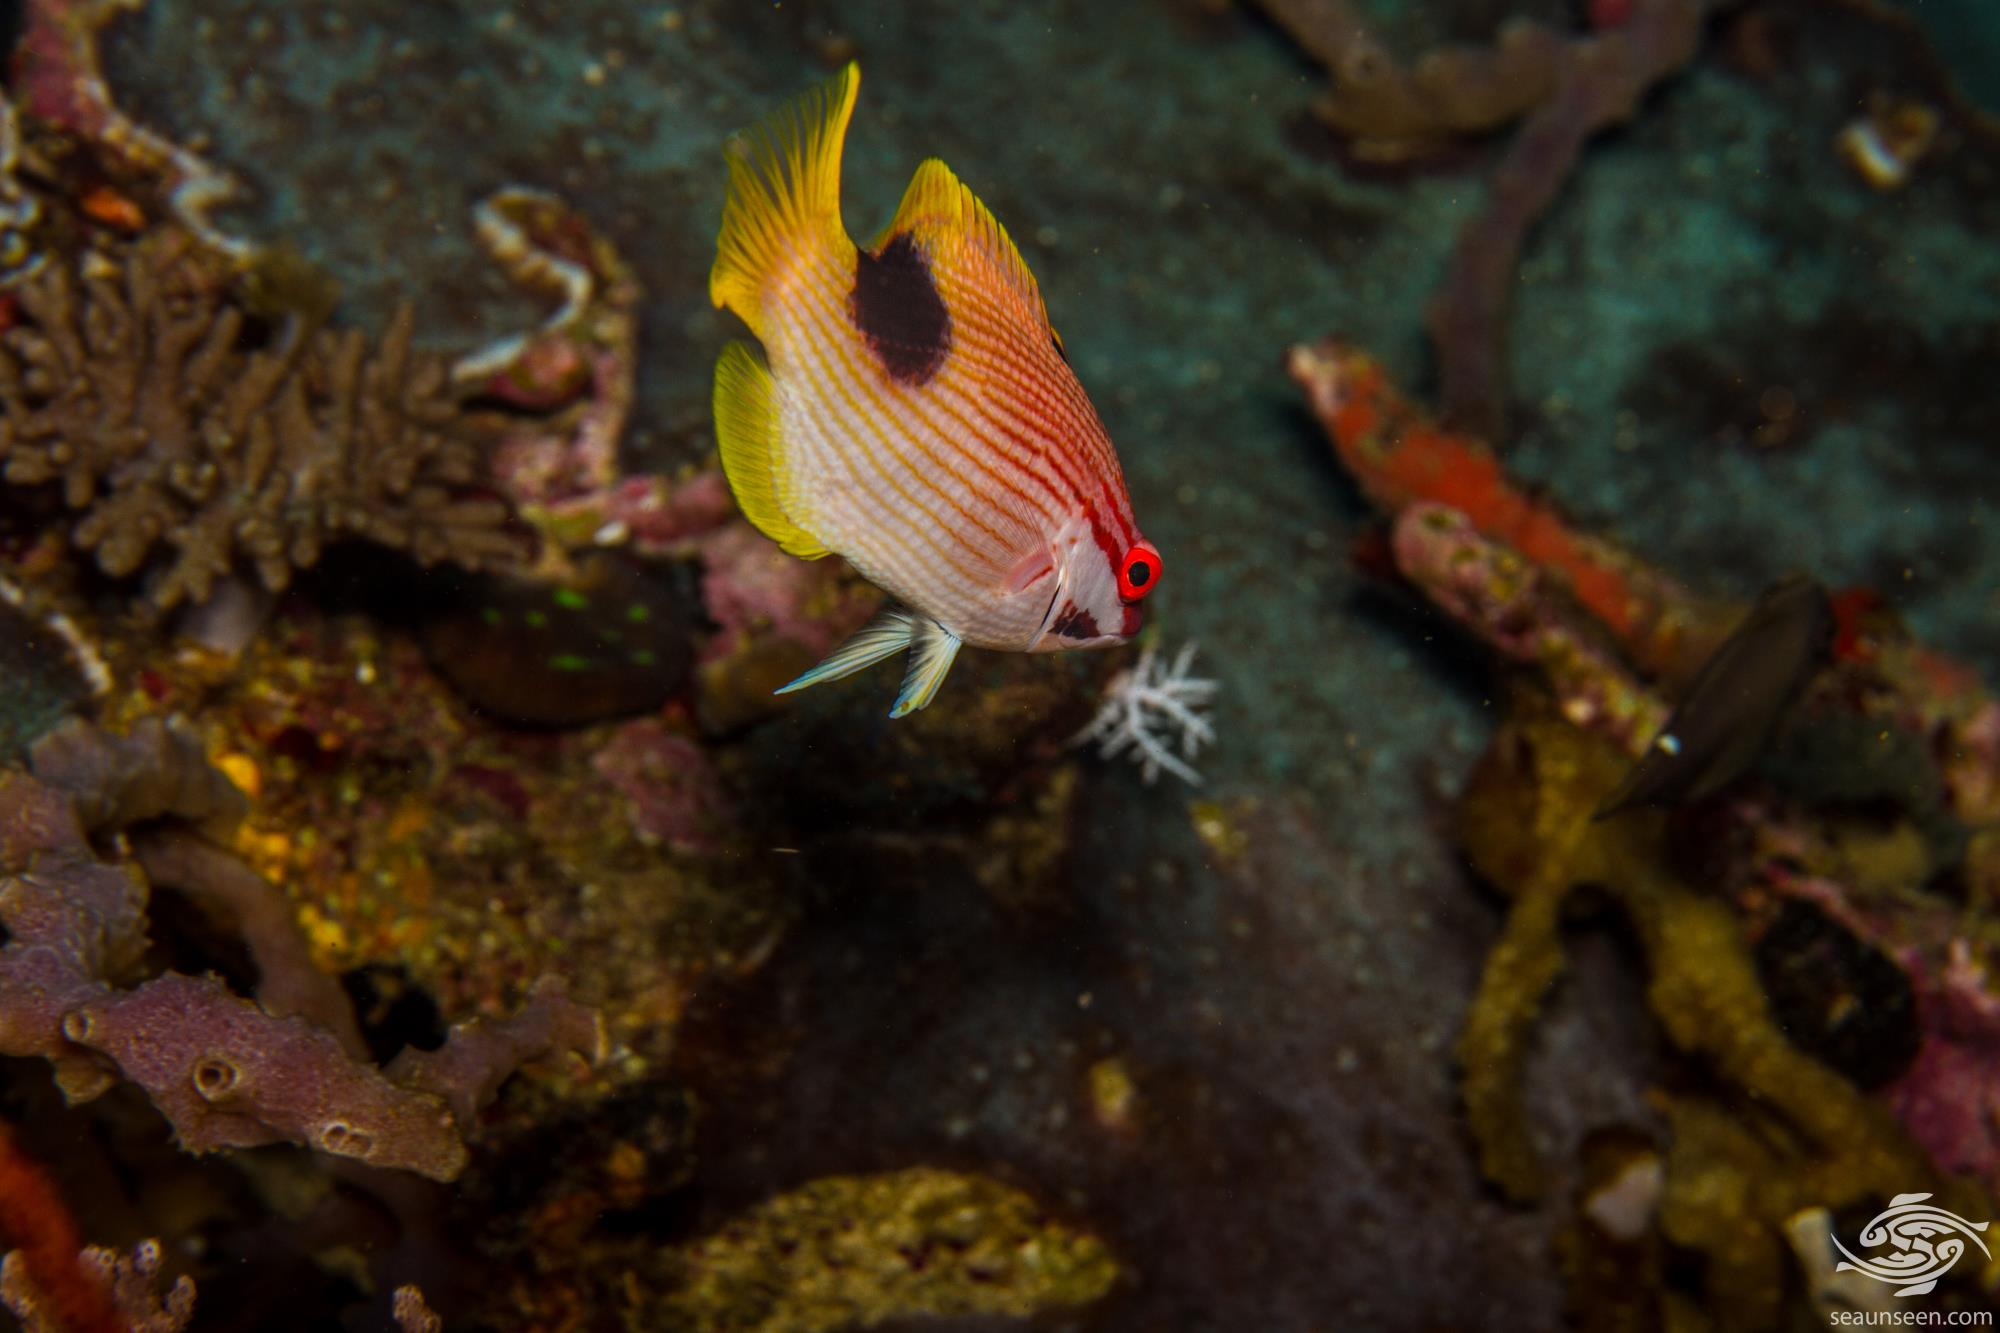 Saddleback Hogfish (Bodianus bilunulatus) is also known as the Blackspot wrasse, Crescent banded hogfish, Tarry hogfish and the Tuxedo hogfish